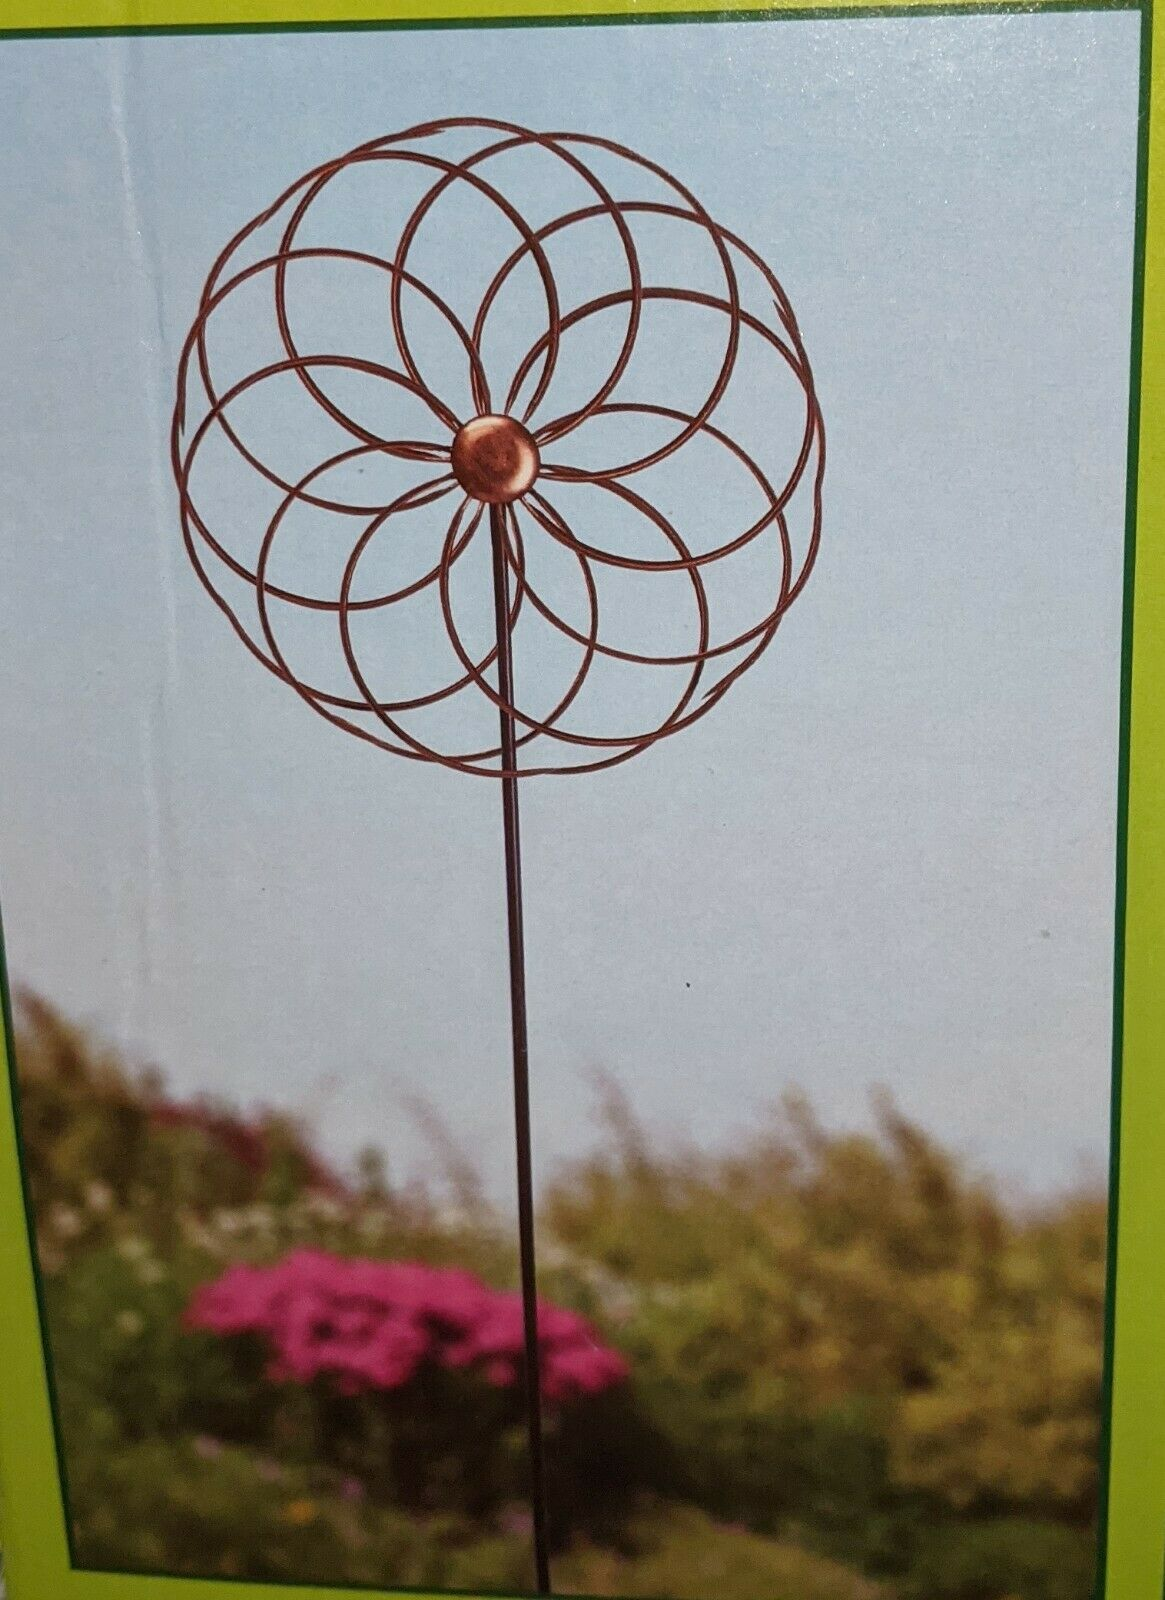 Metal Flower KINETIC WIND SPINNER * Pole/Stake for STANDING * Hook for HANGING